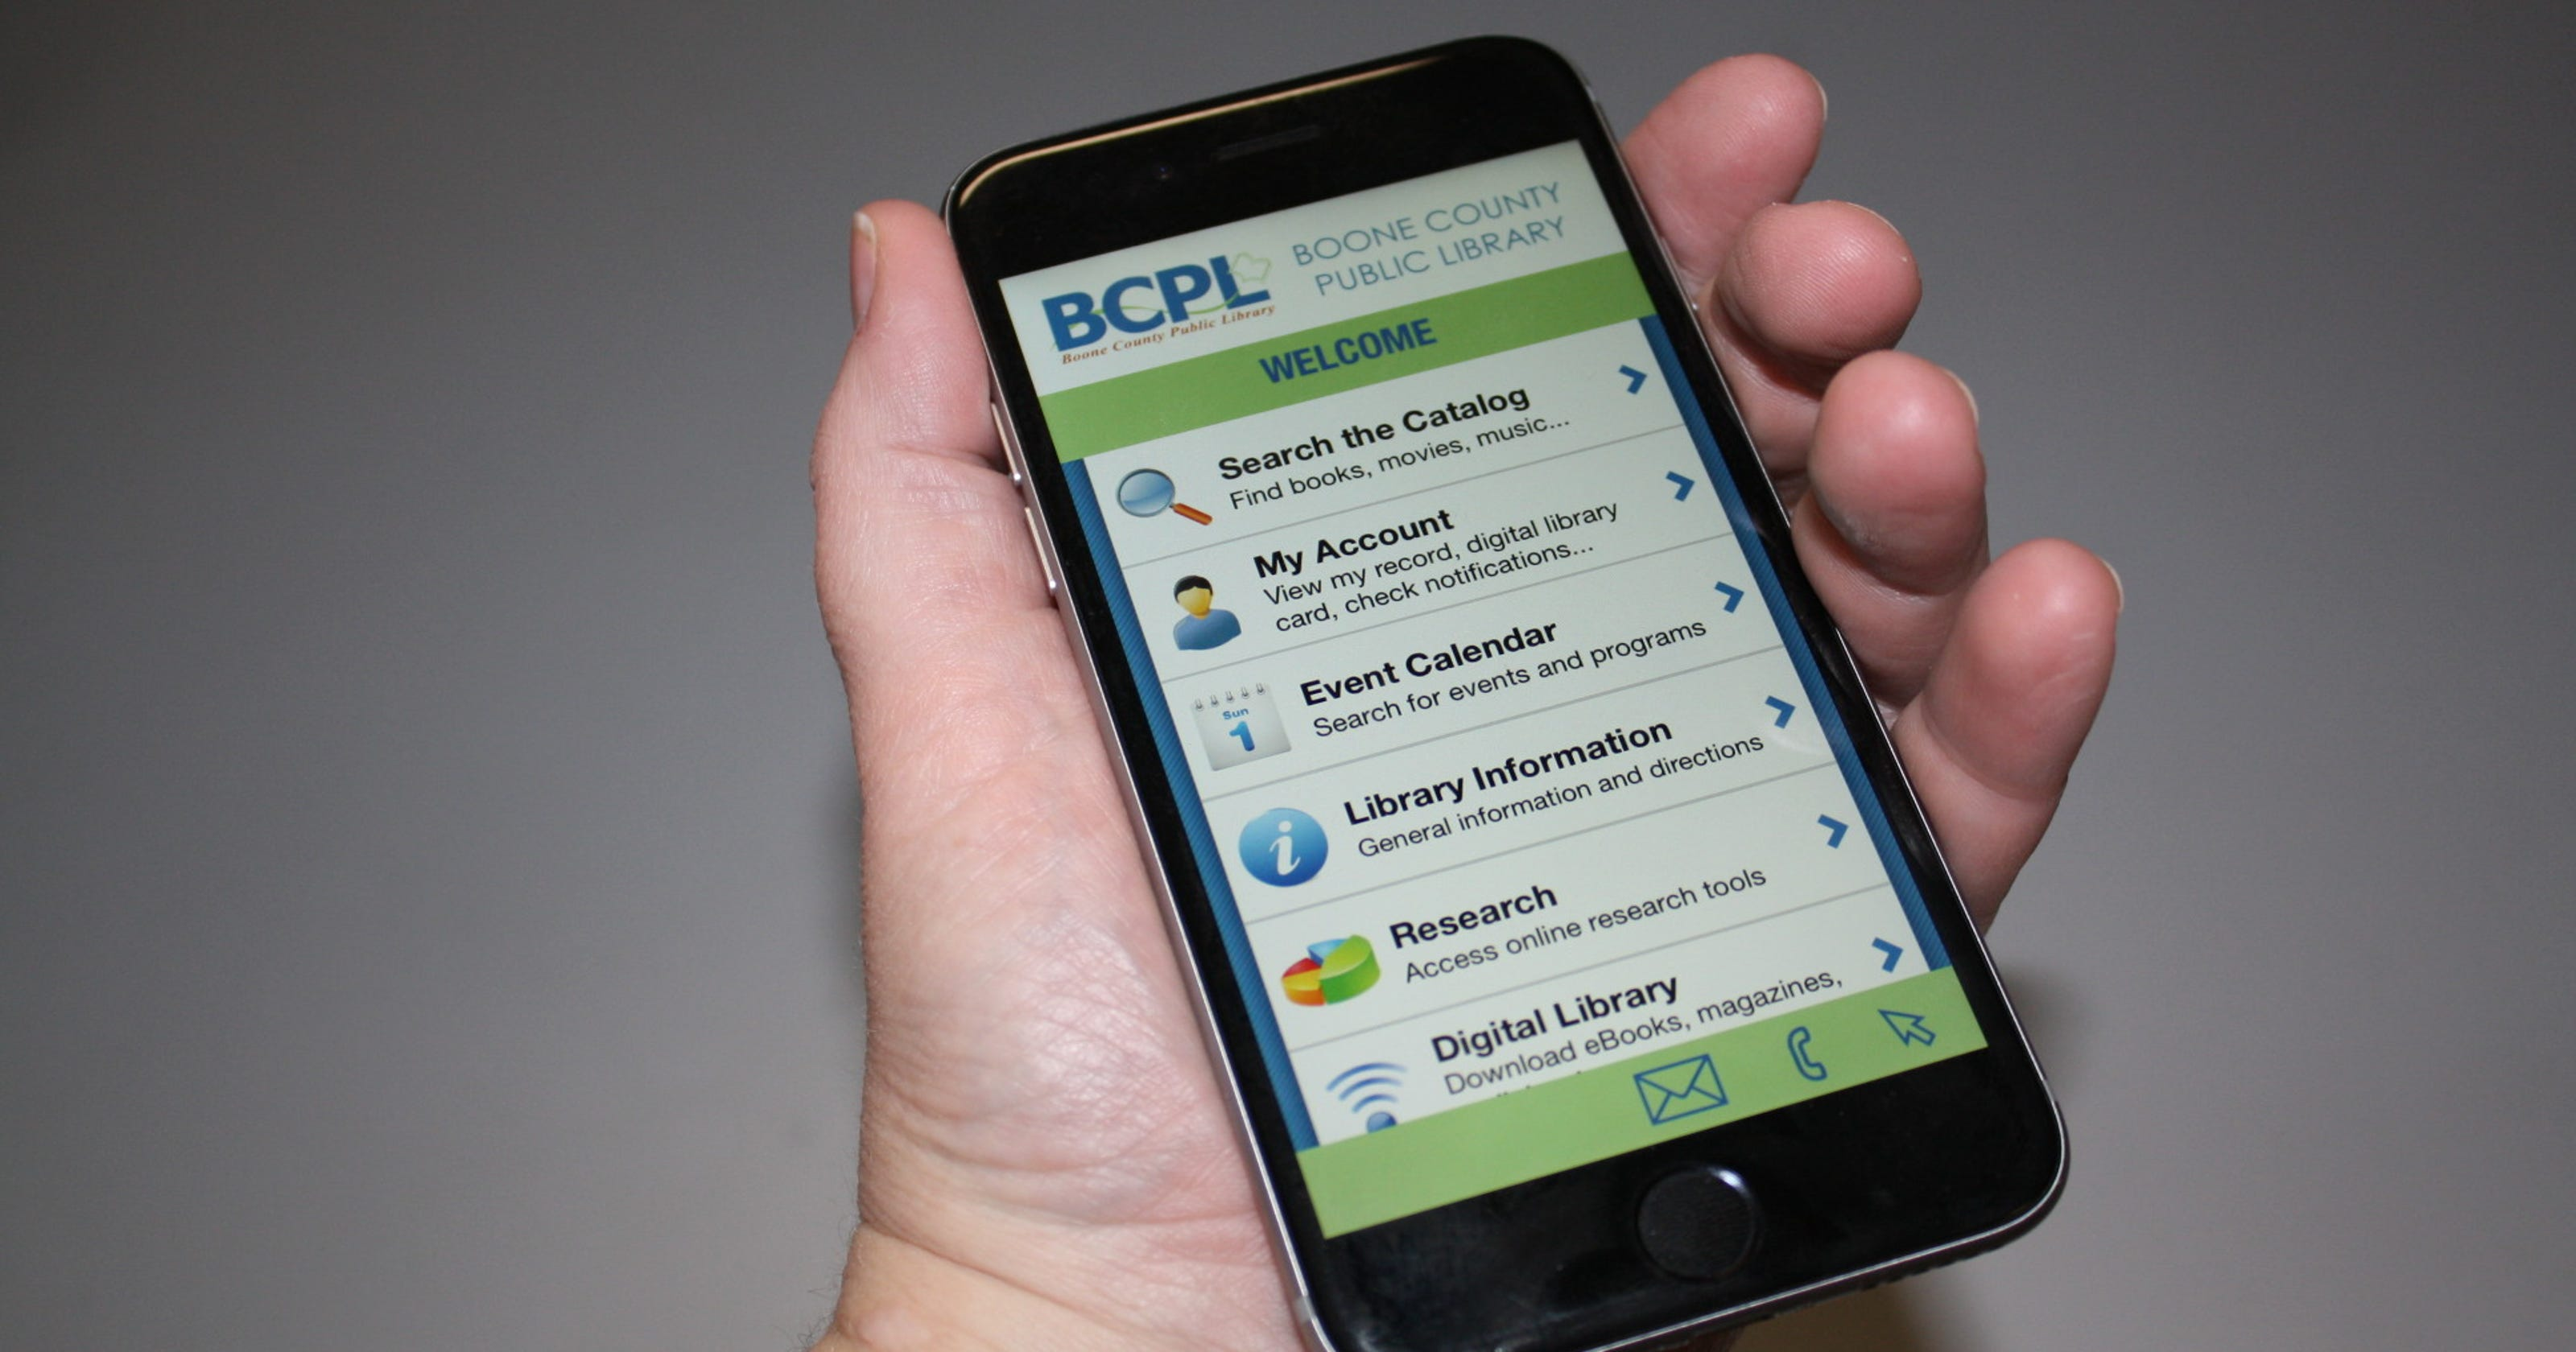 Boone Library offers free smartphone app